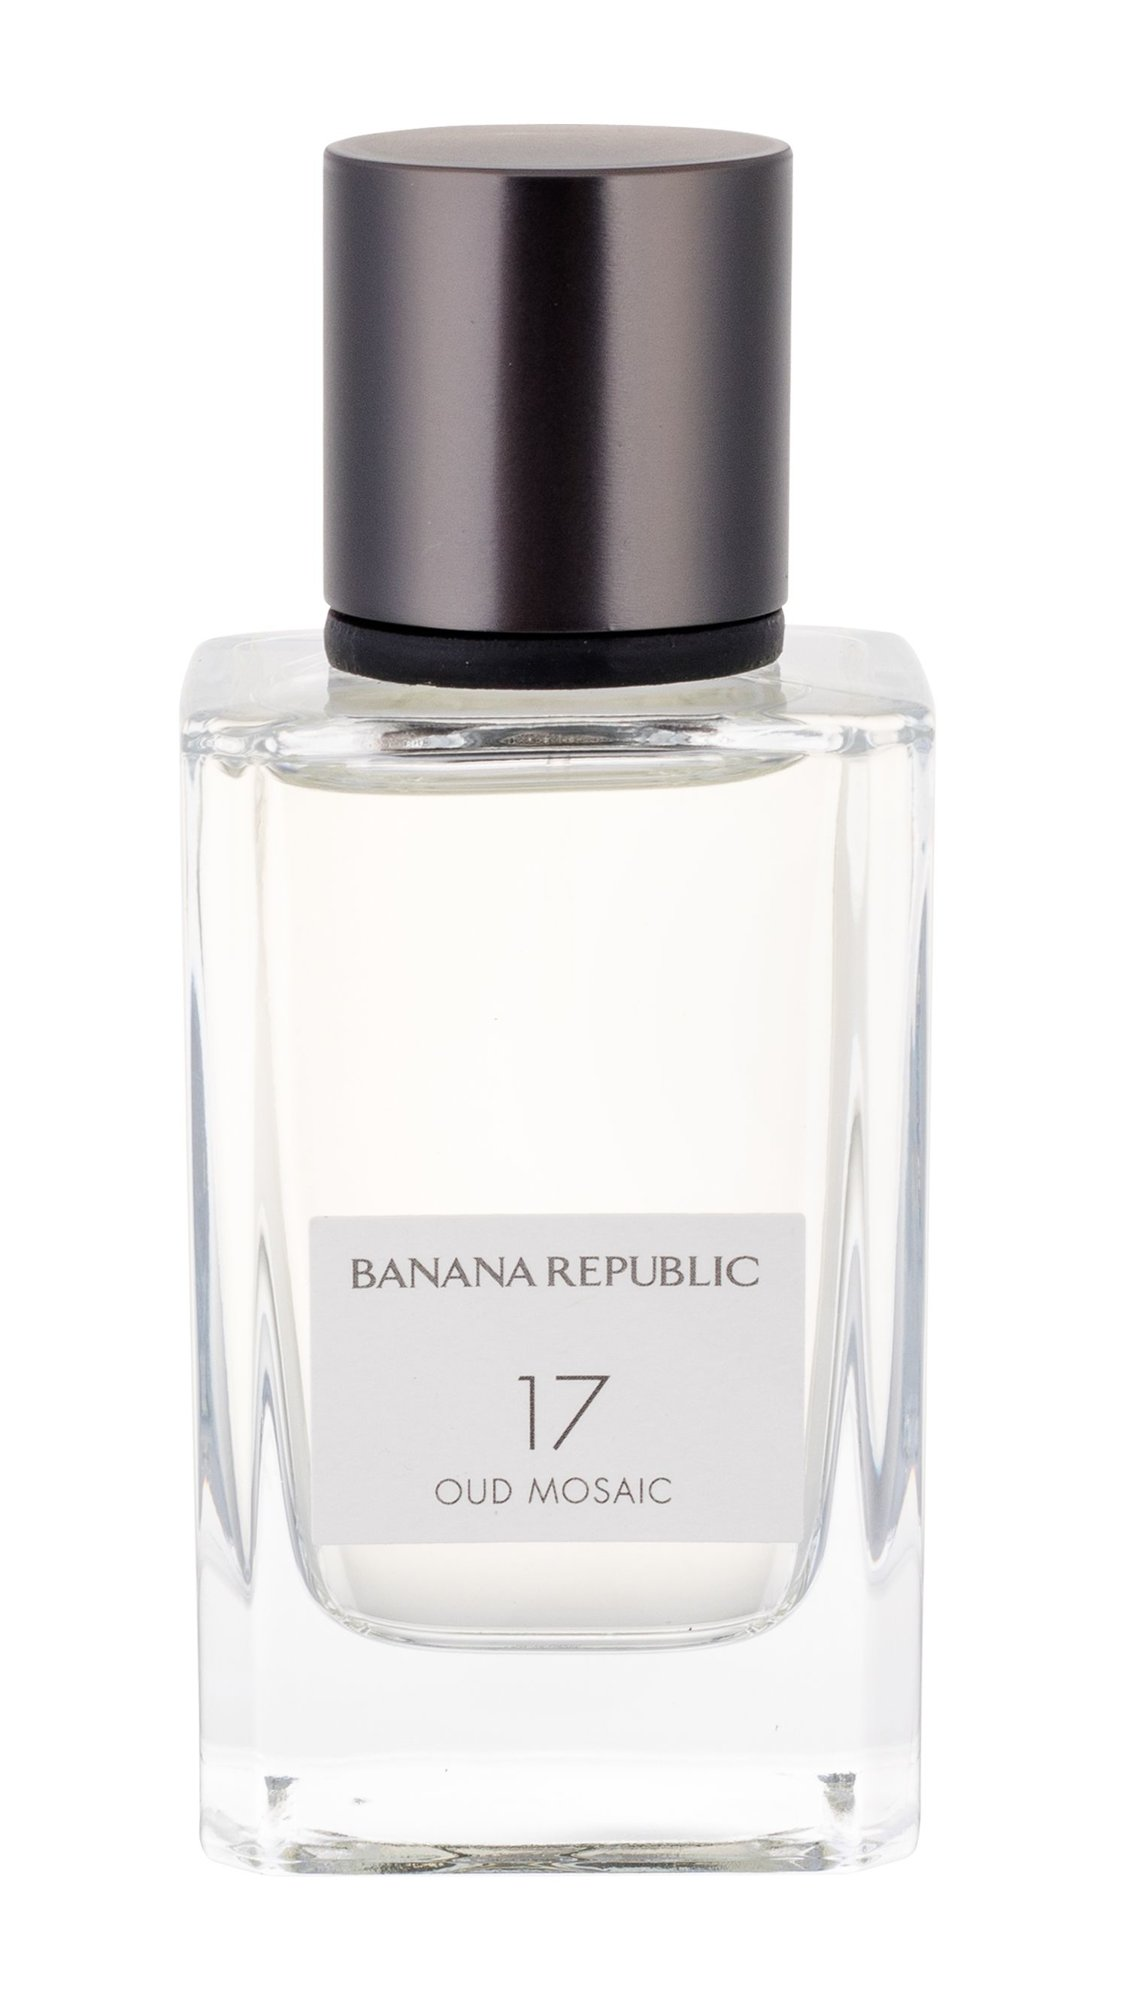 Banana Republic 17 Oud Mosaic Eau de Parfum 75ml